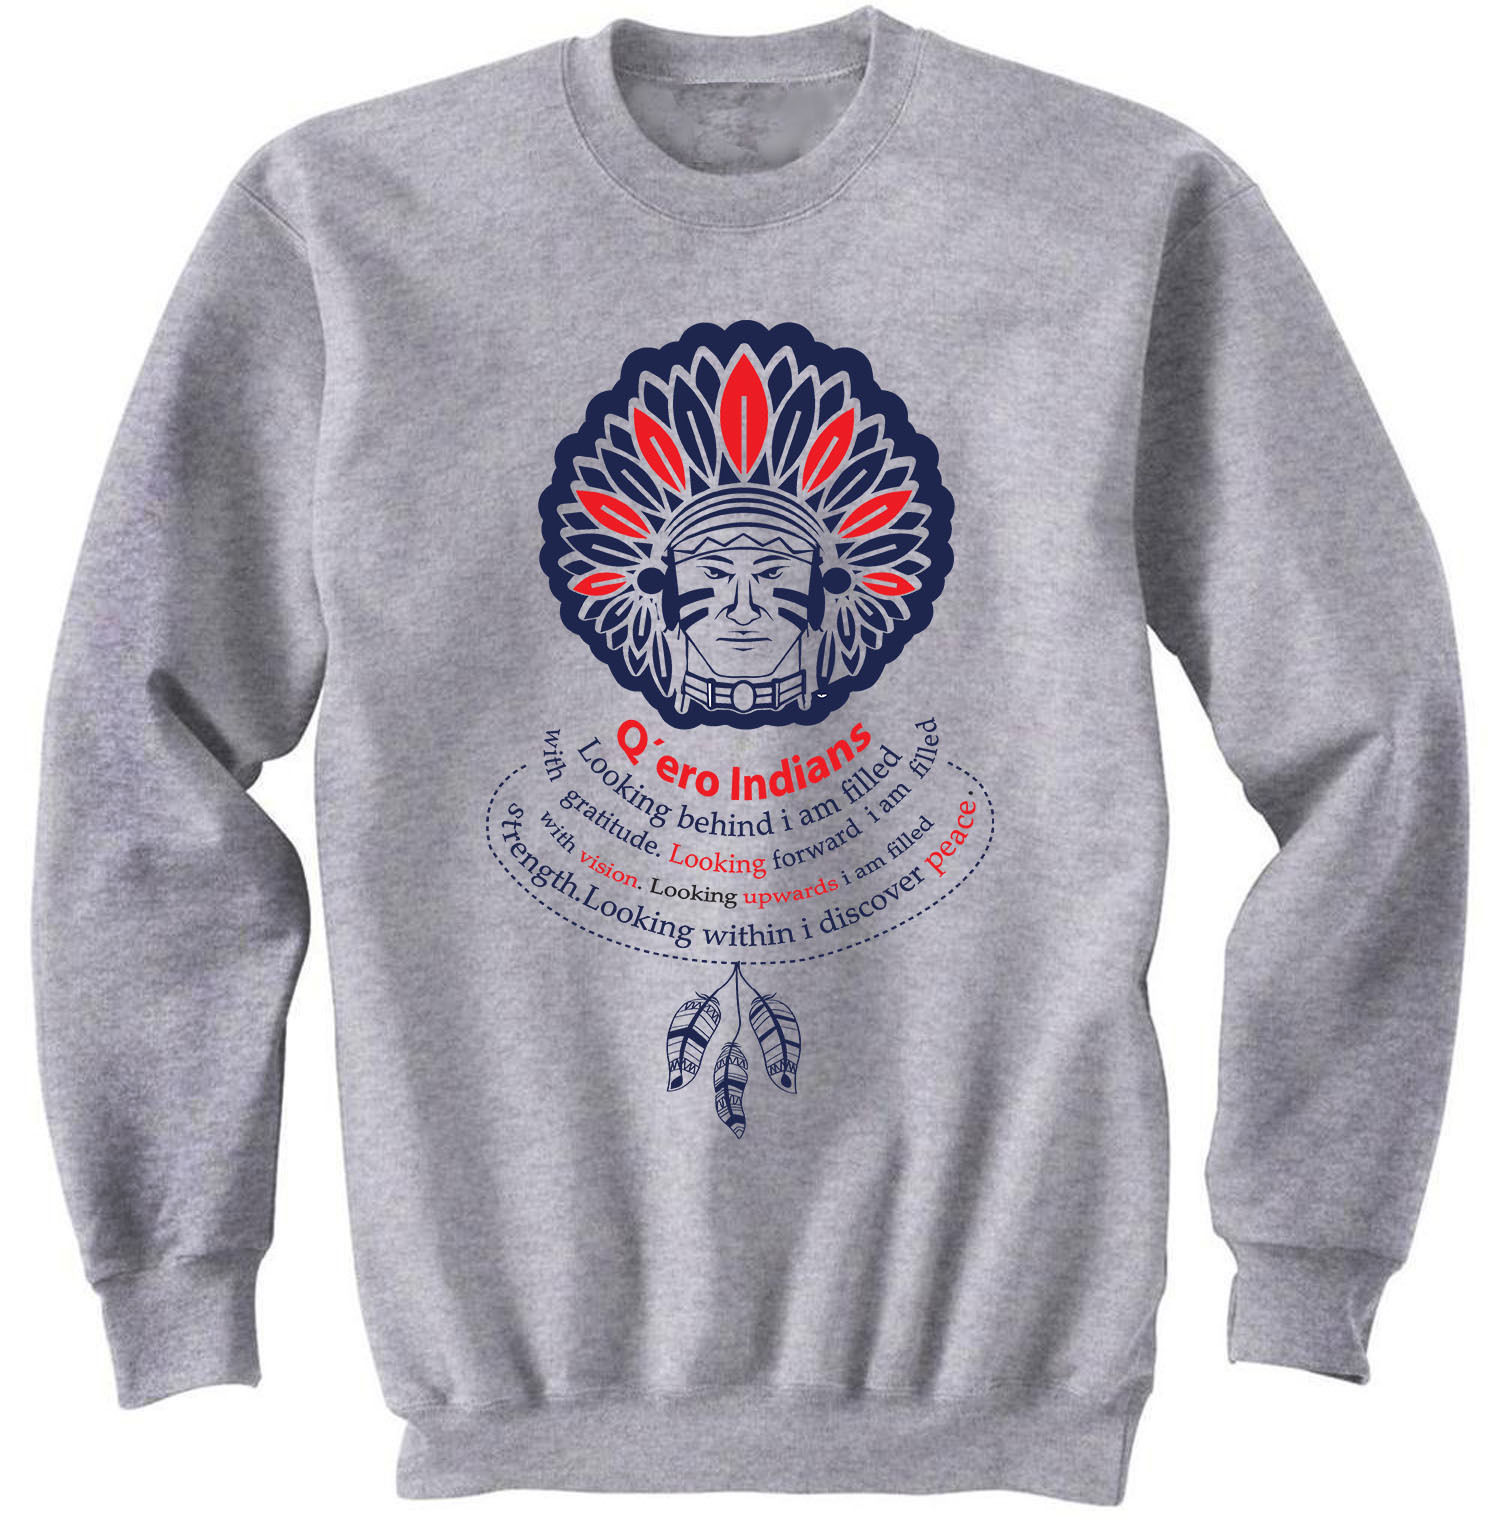 AMERICAN NATIVE WISDOM LOOKING BEHIND - COTTON GREY SWEATSHIRT- ALL SIZES